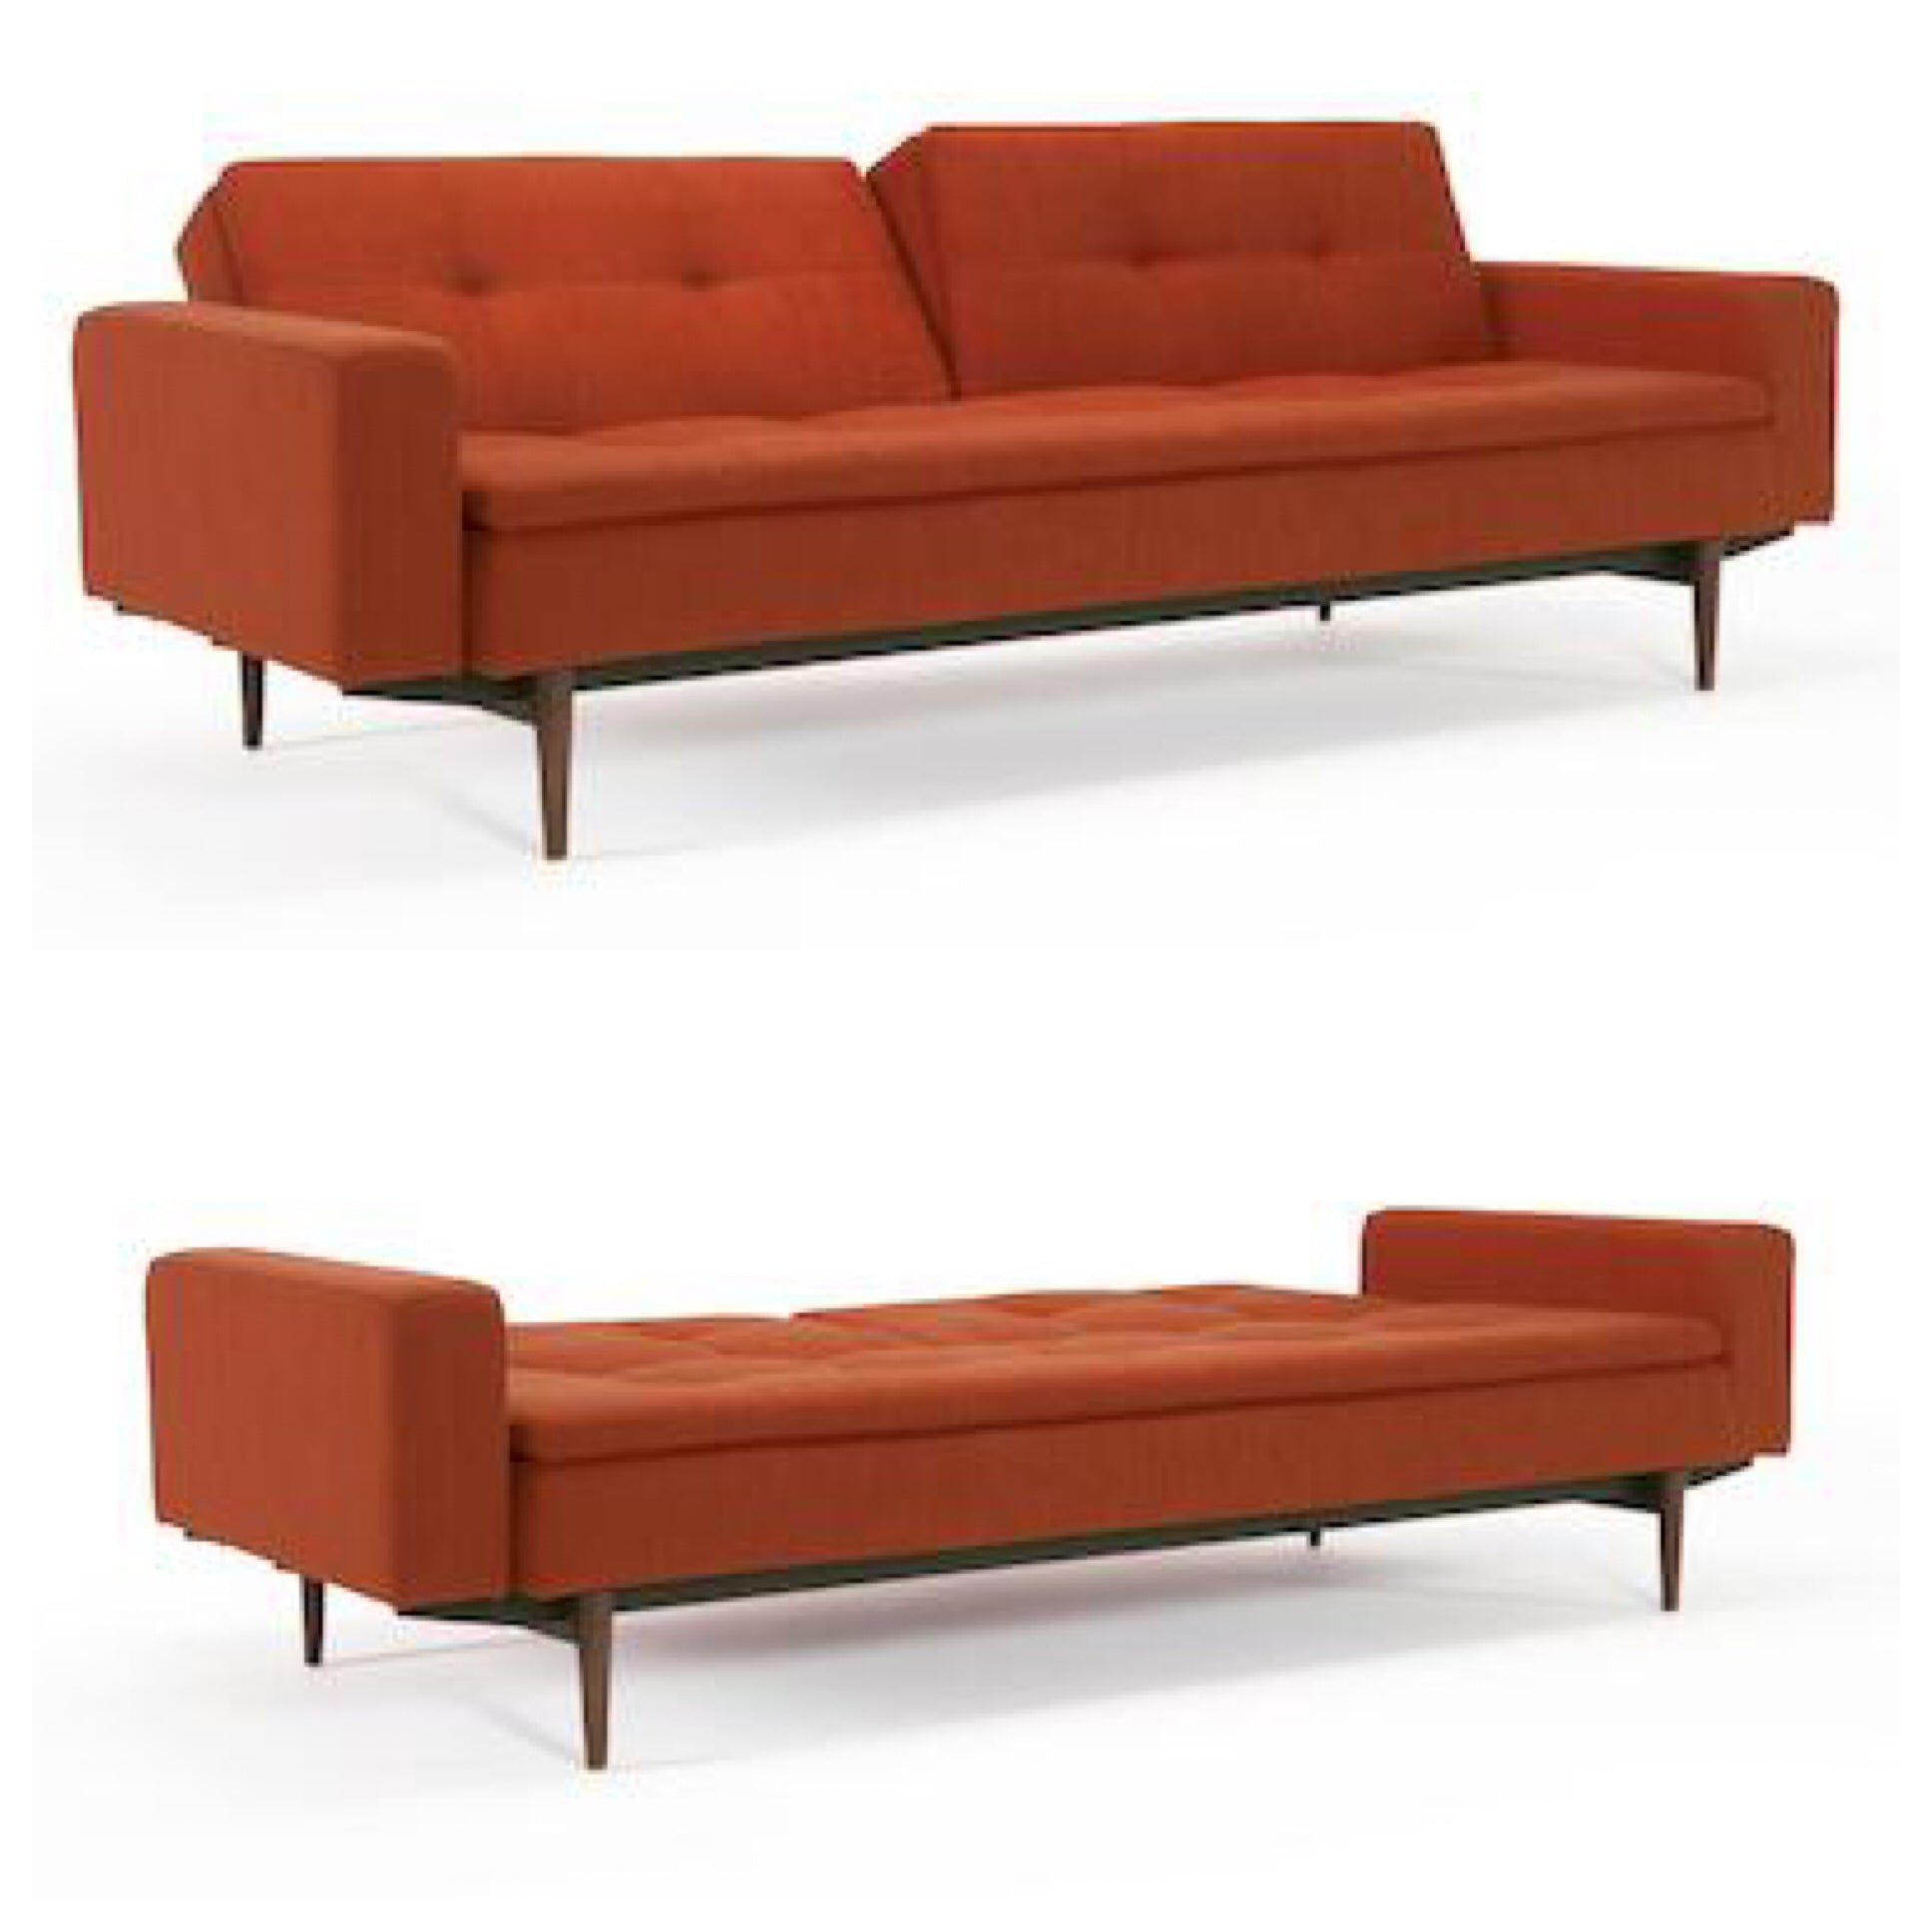 Dublexo Sleeper Sofa with Arms by Innovation at Trade Source Furniture